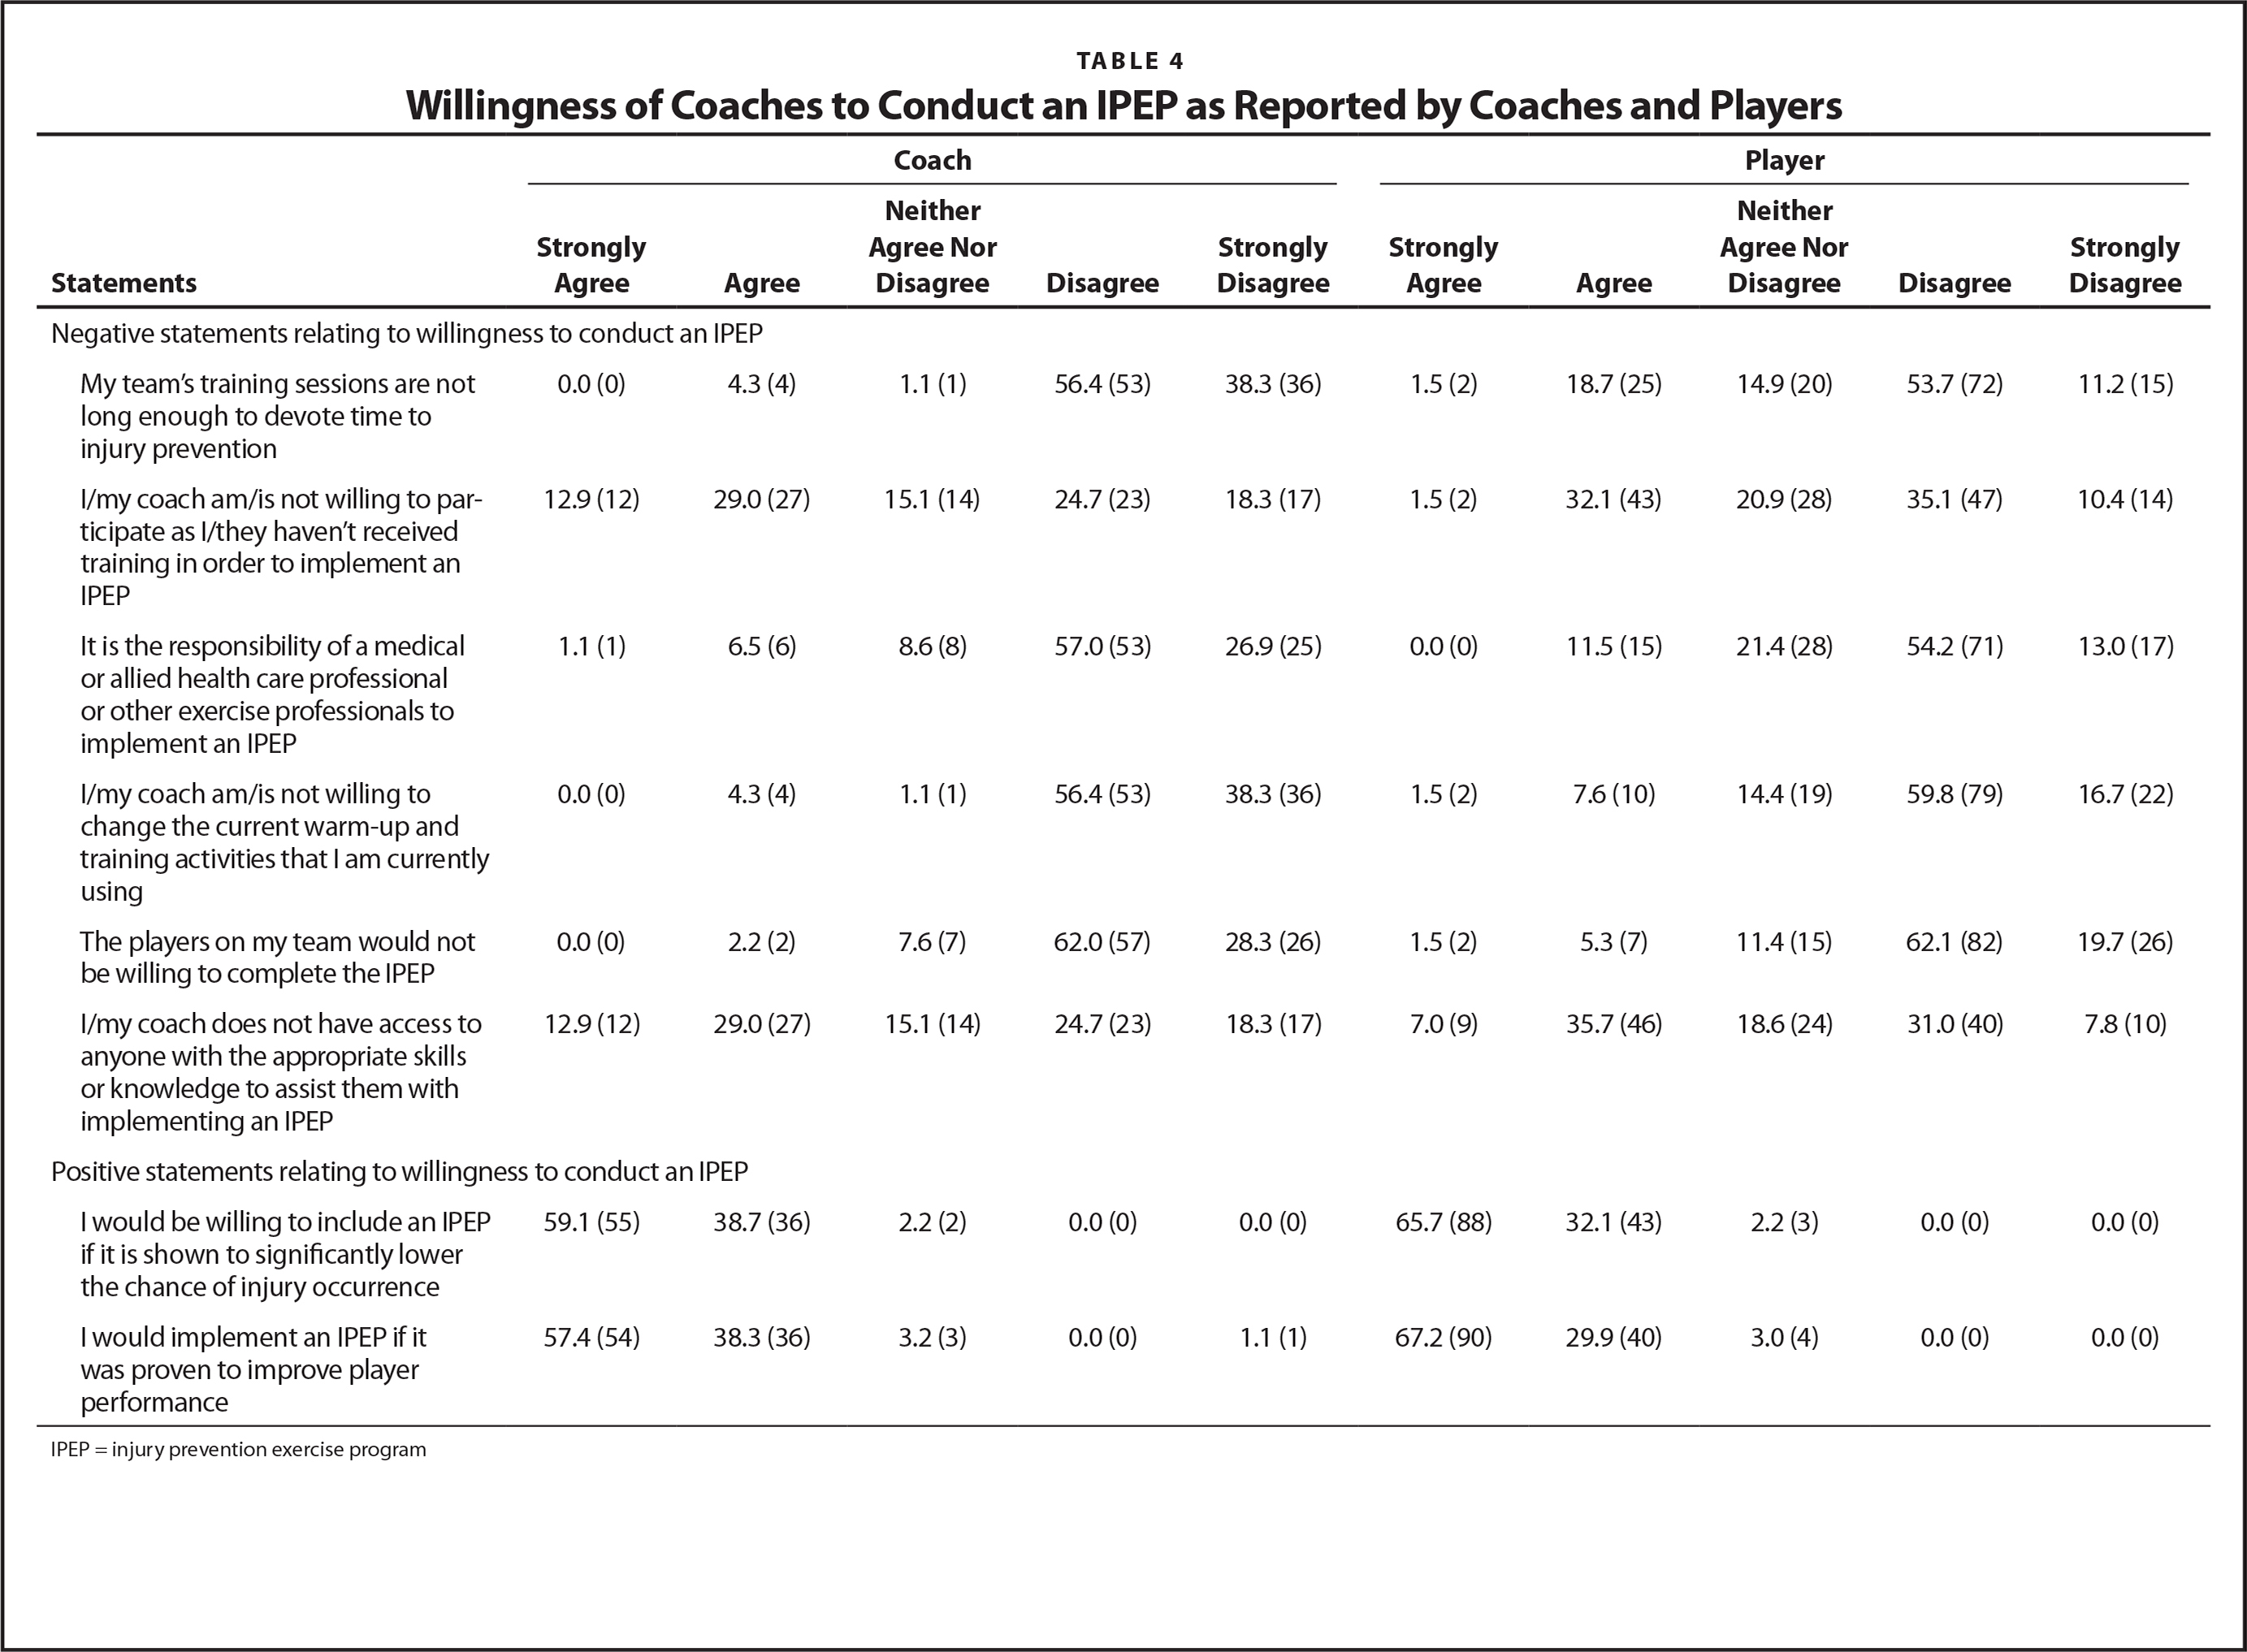 Willingness of Coaches to Conduct an IPEP as Reported by Coaches and Players